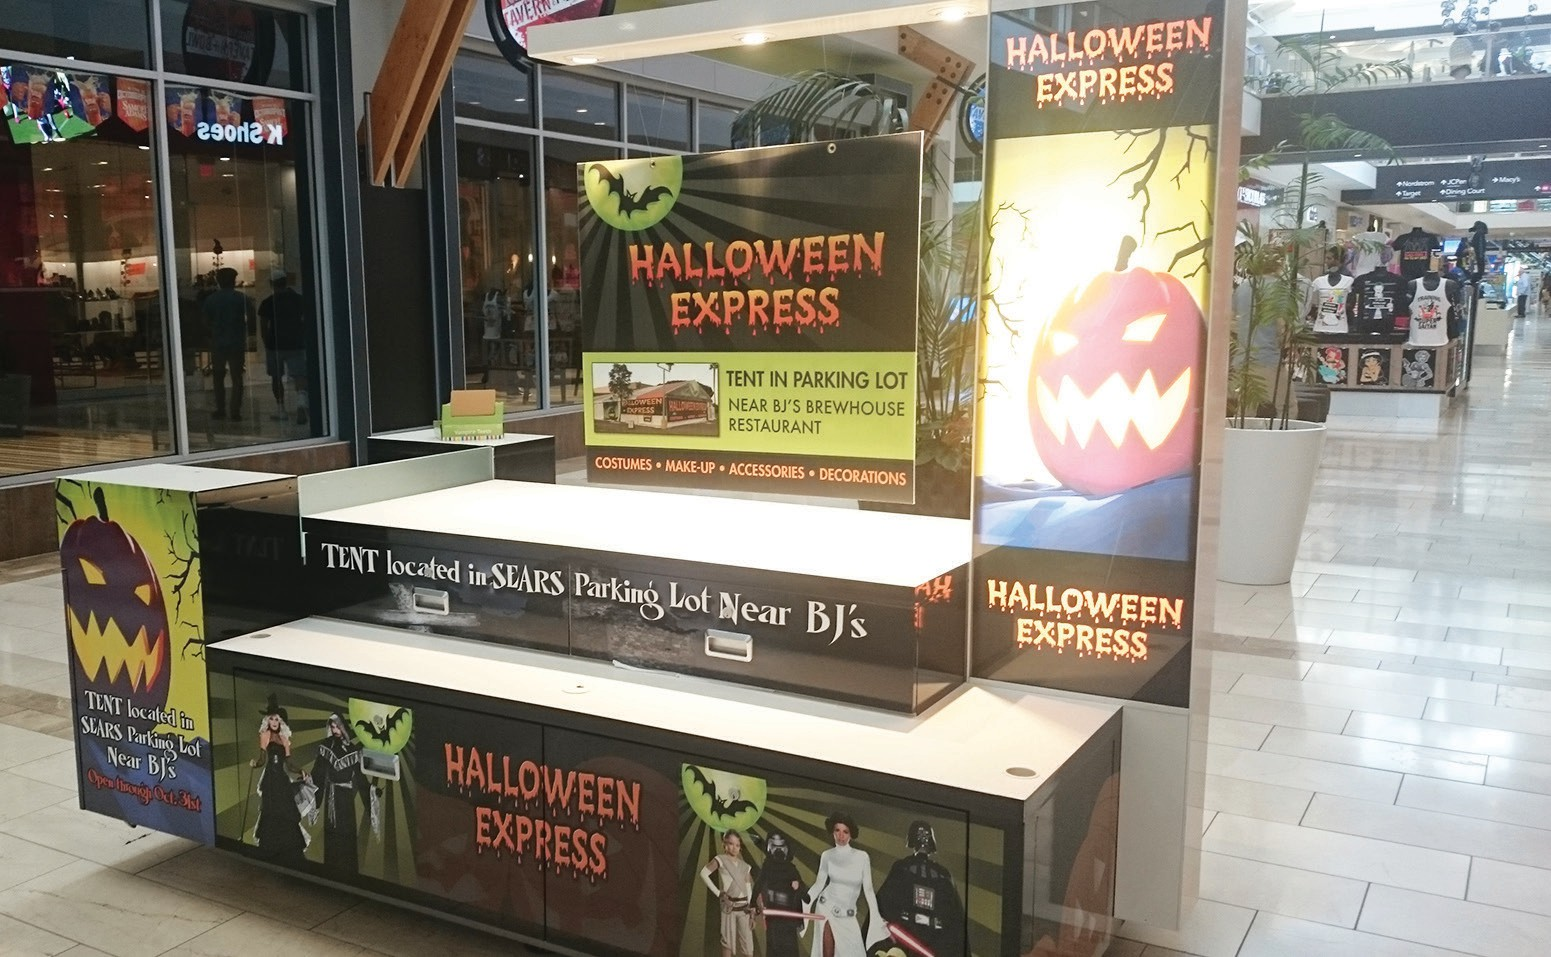 Kiosk to advertise Halloween Express at the North County Mall. Photo by Anne S. Hall.